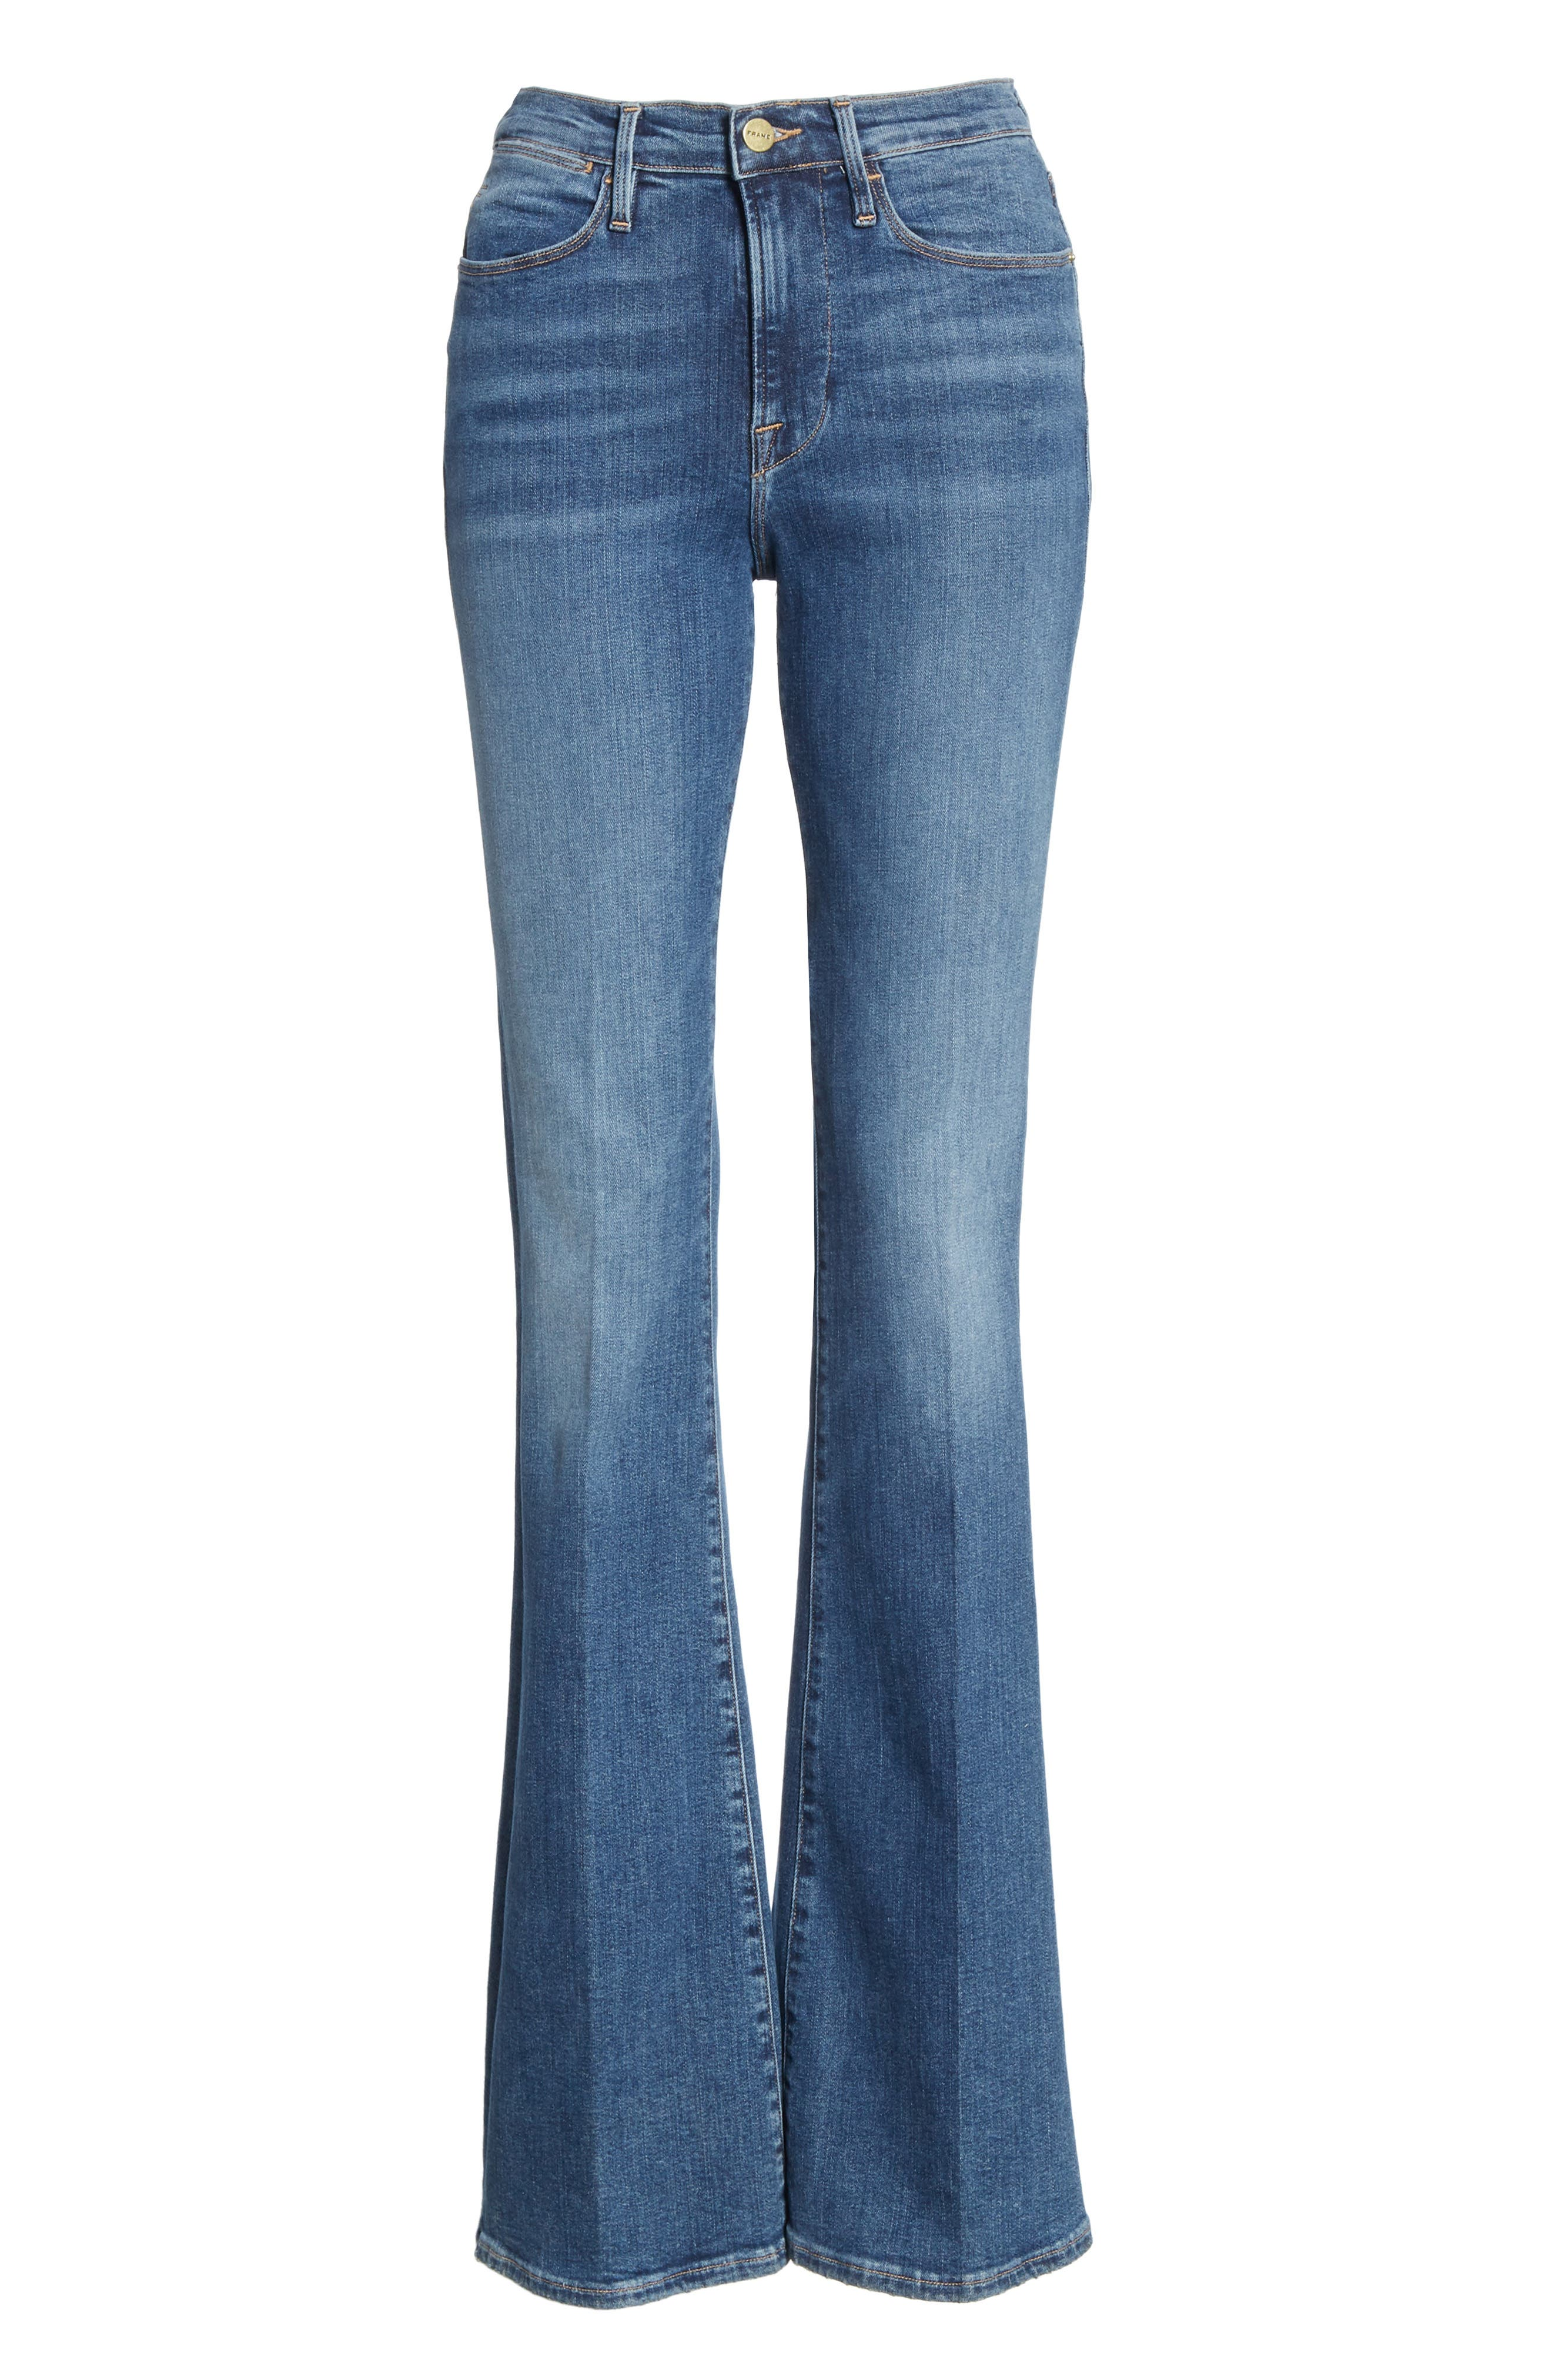 FRAME, Le High Flare Jeans, Alternate thumbnail 8, color, CRISTALLO